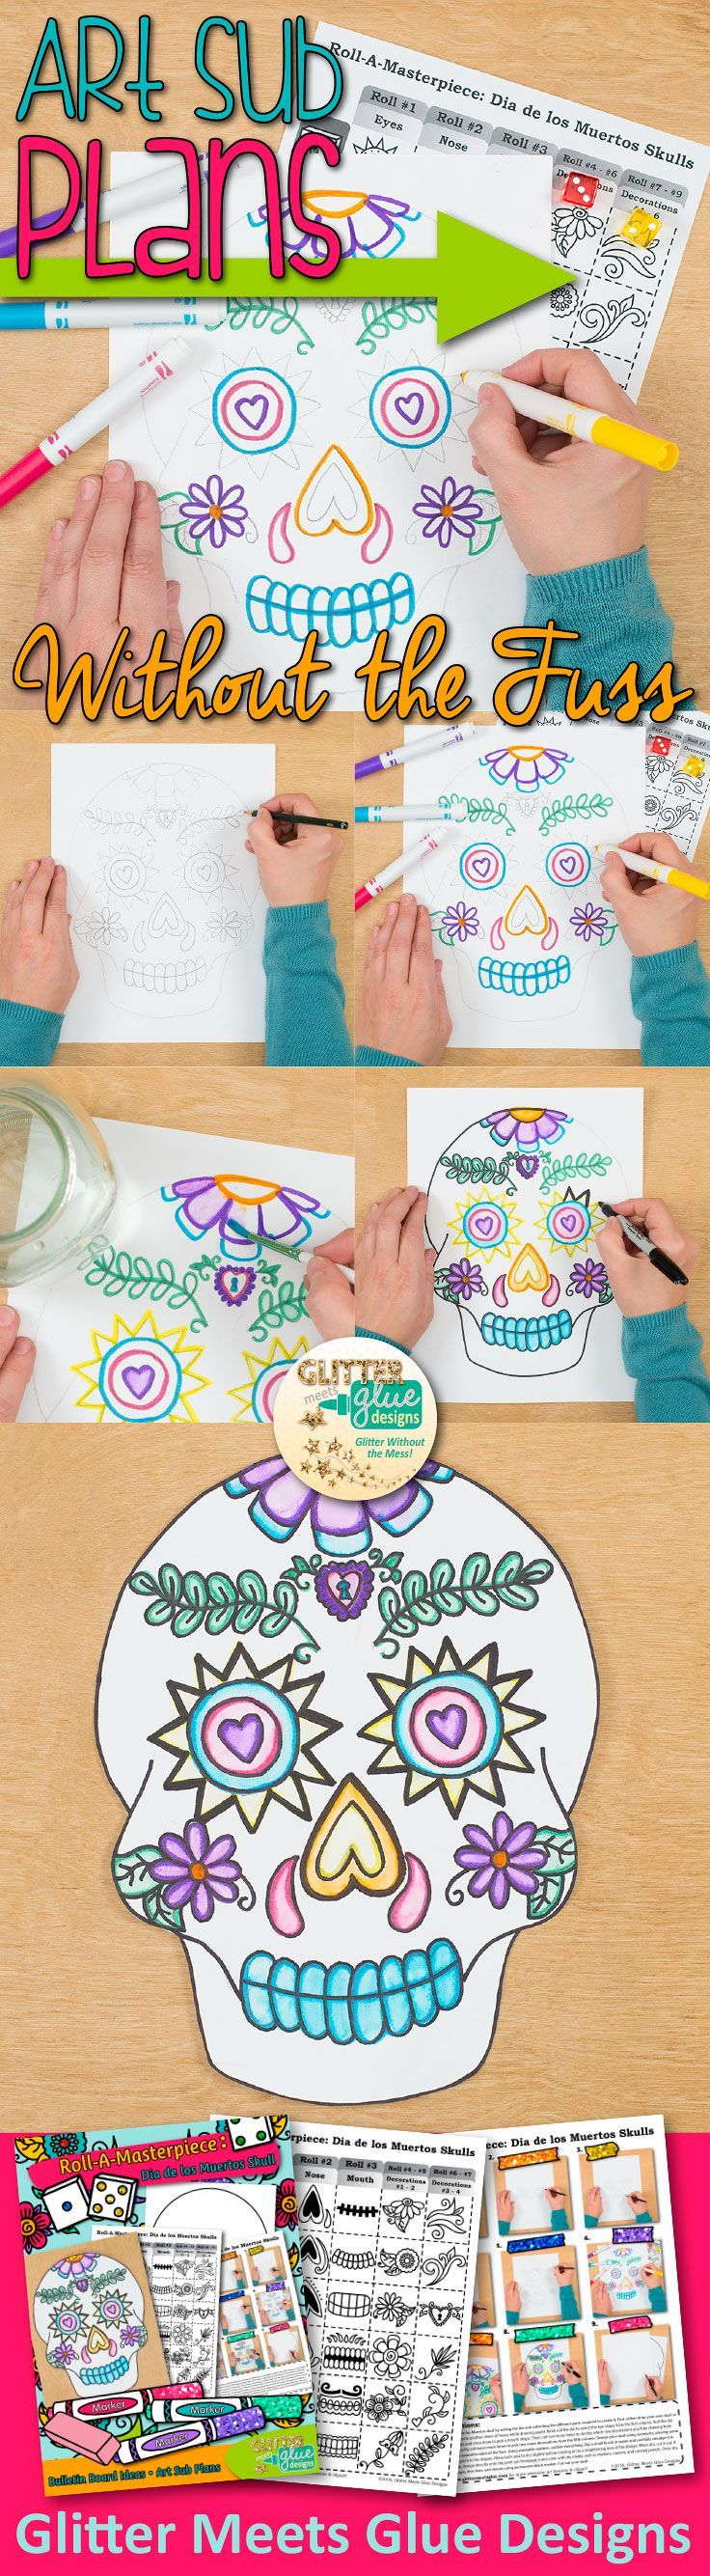 Dia de los Muertos (Day of the Dead) sugar skulls are a fun project to design with your students. This game is a great companion for your next Mexican art and culture unit.